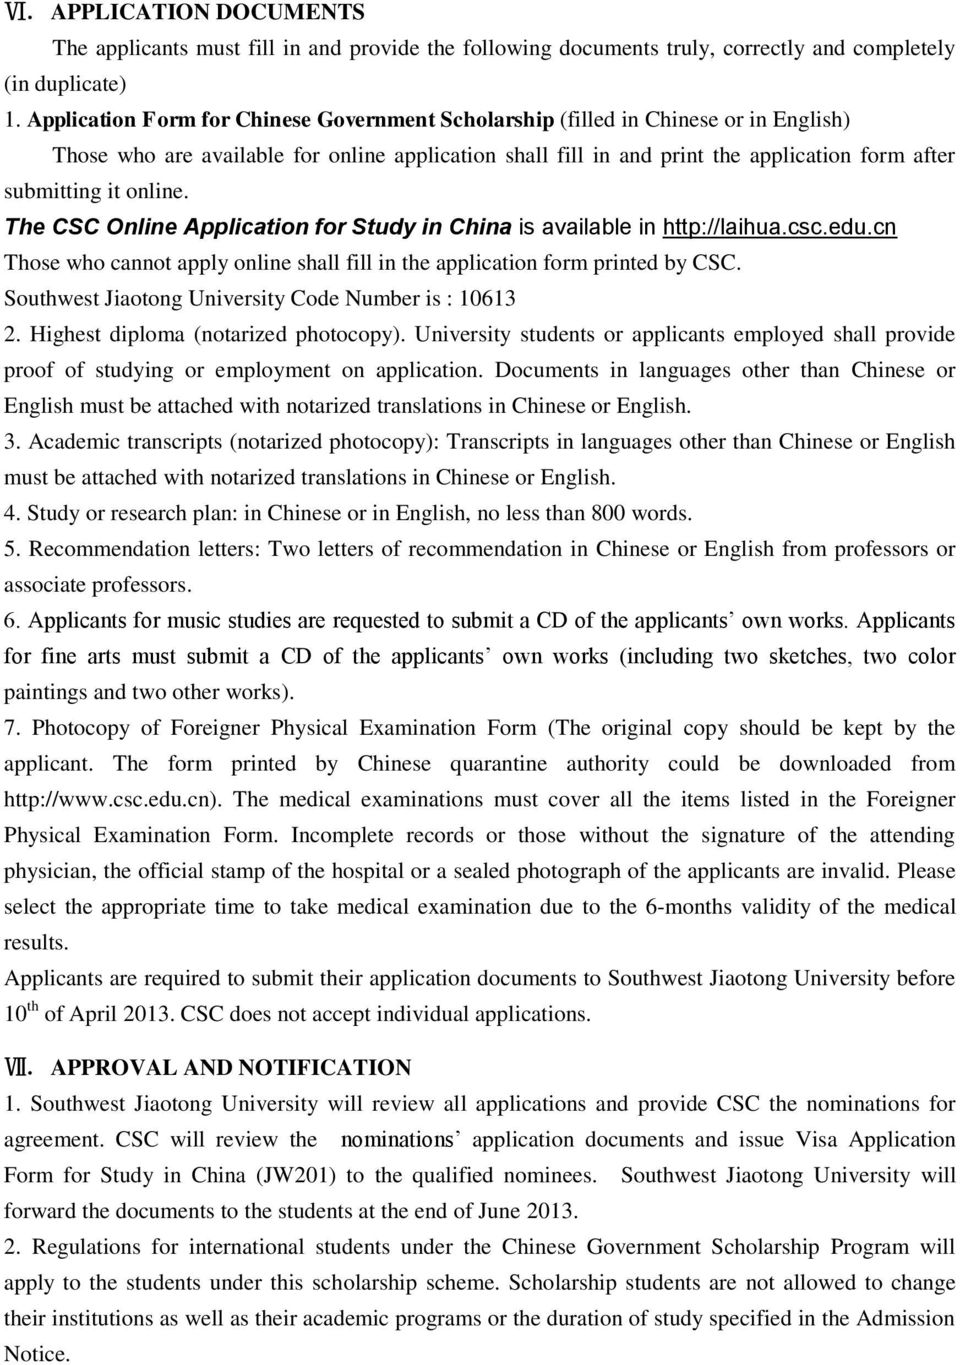 online. The CSC Online Application for Study in China is available in http://laihua.csc.edu.cn Those who cannot apply online shall fill in the application form printed by CSC.